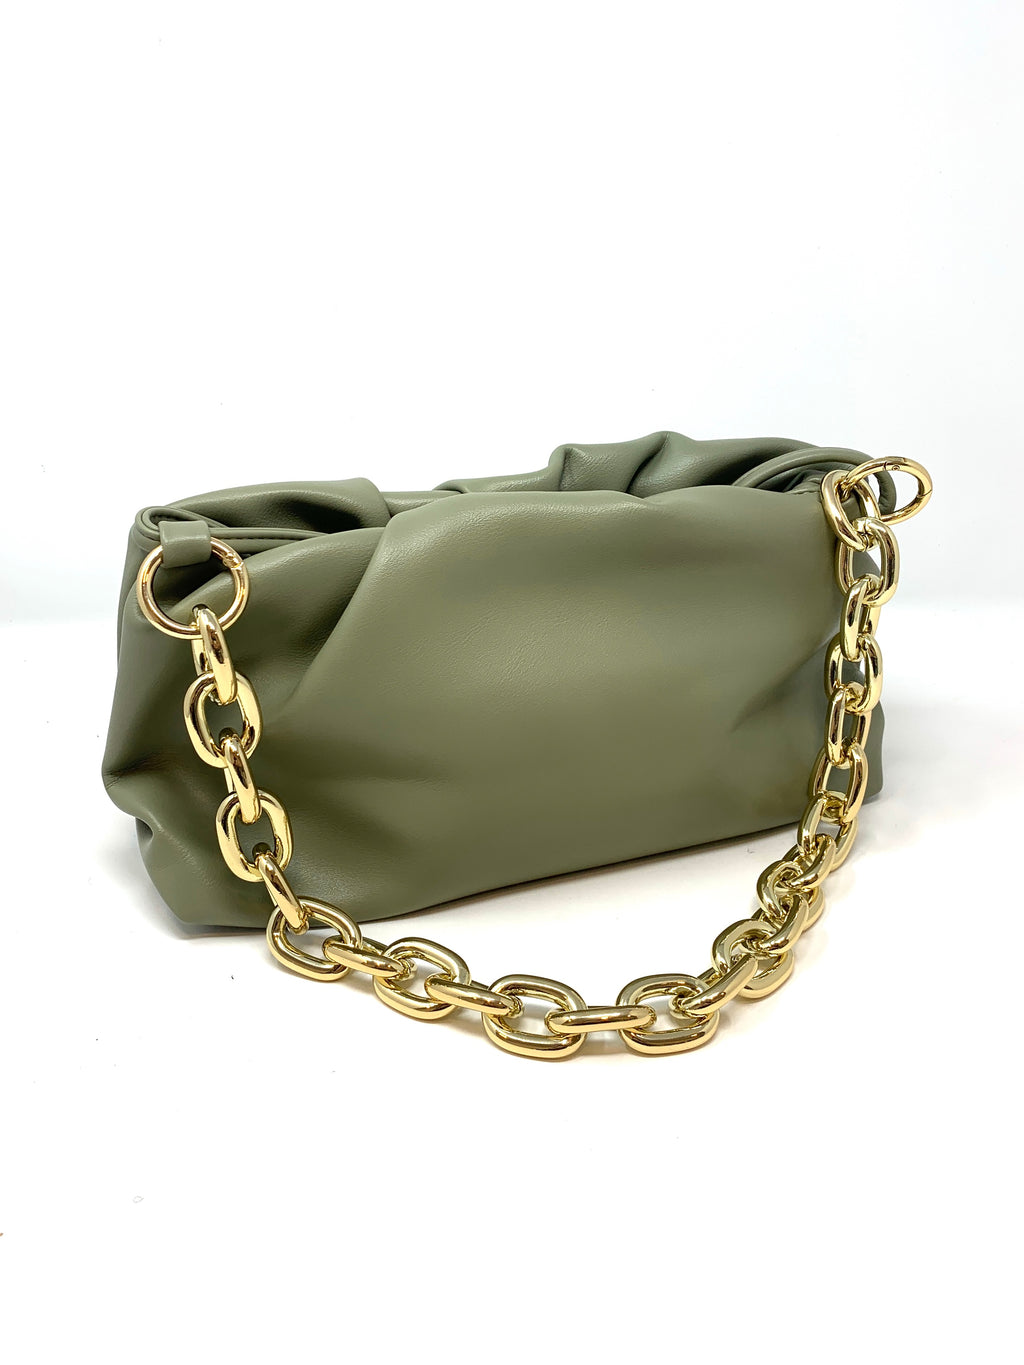 Pouch Bag with Chunky Chain and Crossbody Strap in Soft Olive Green